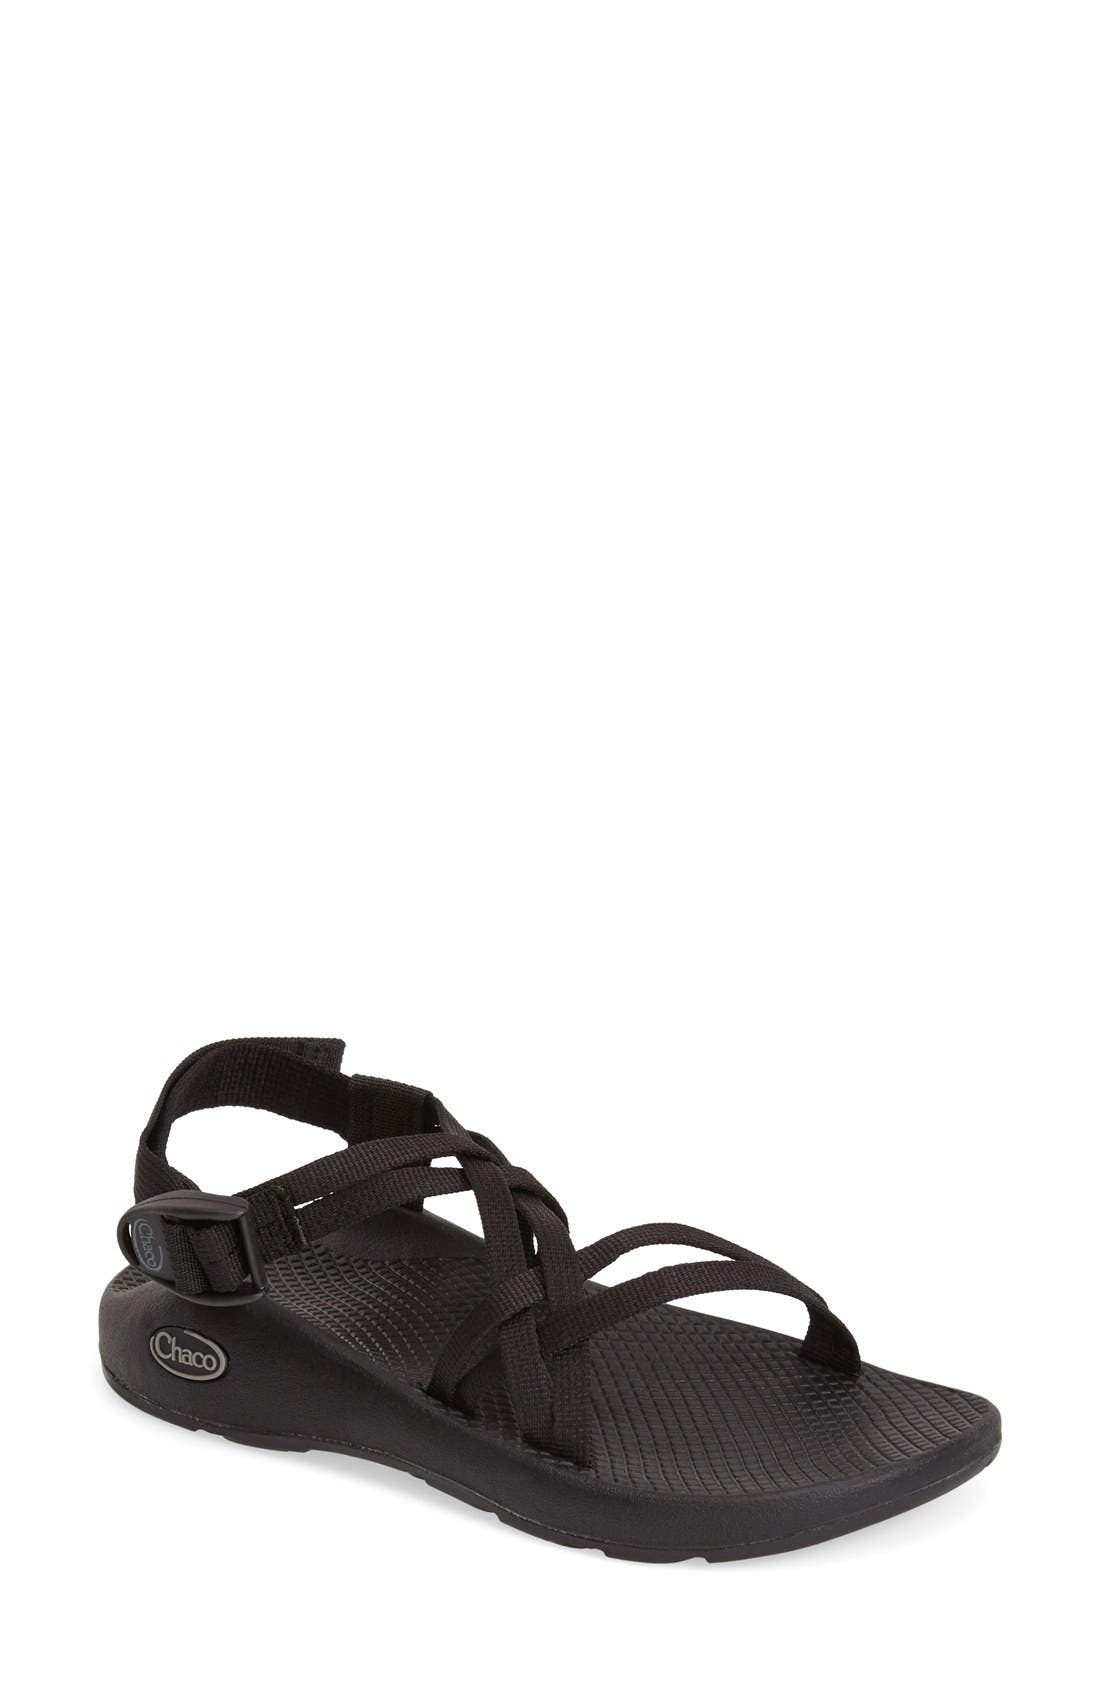 Alternate Image 1 Selected - Chaco 'ZX1 Yampa' Double Strap Sport Sandal (Women)